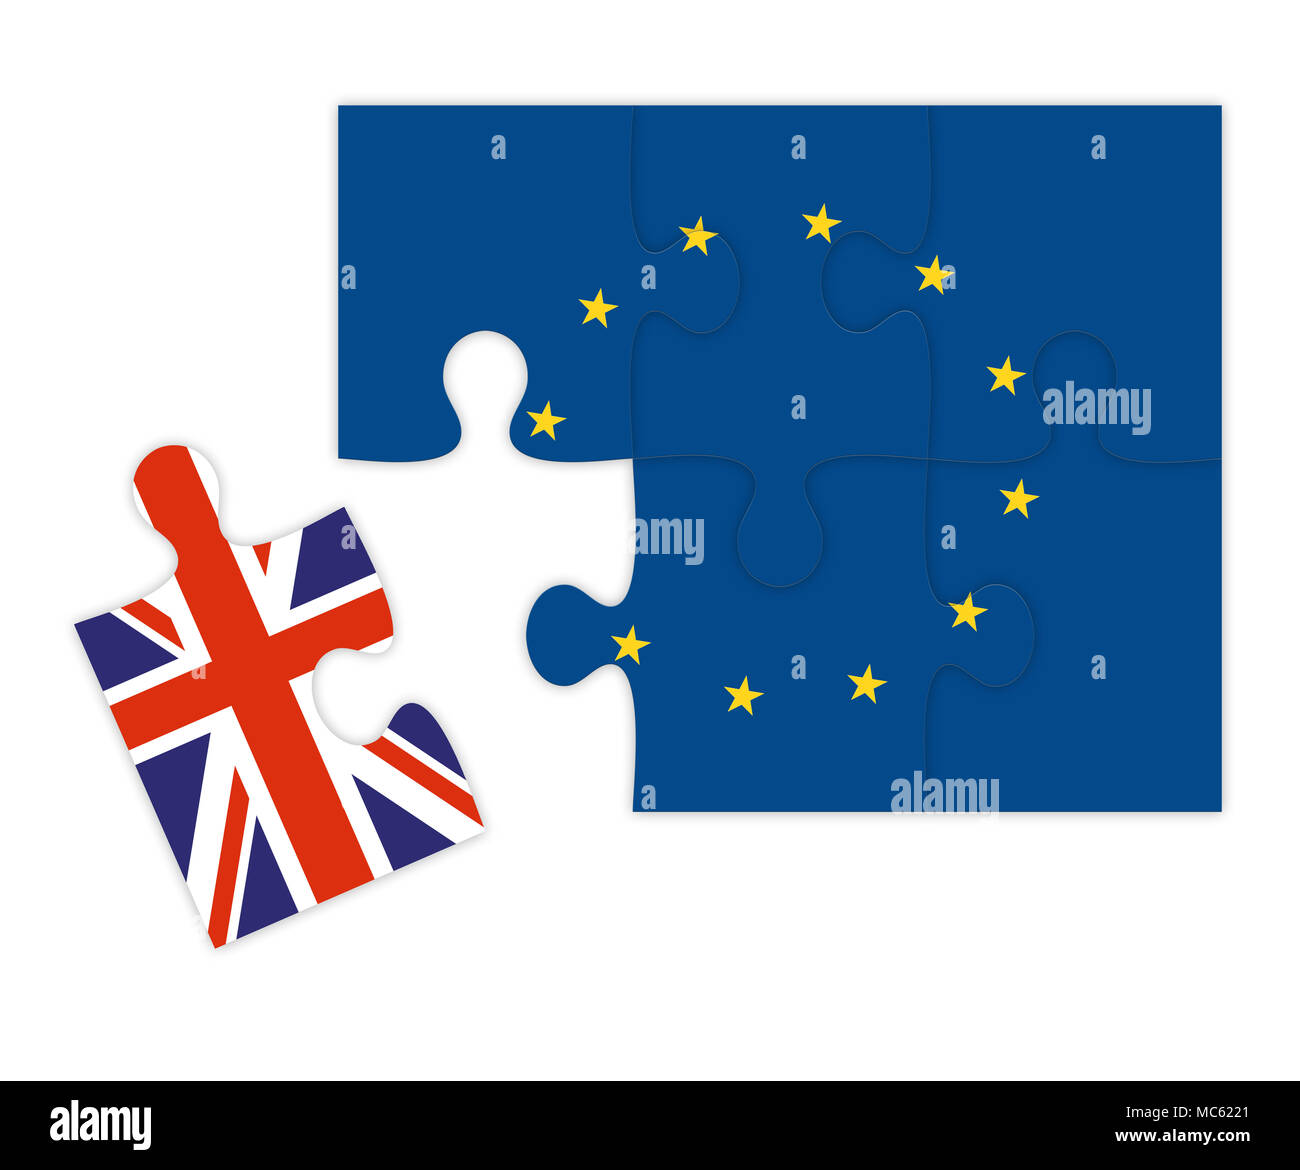 concept image of Brexit, Britain leaving the European union - Stock Image